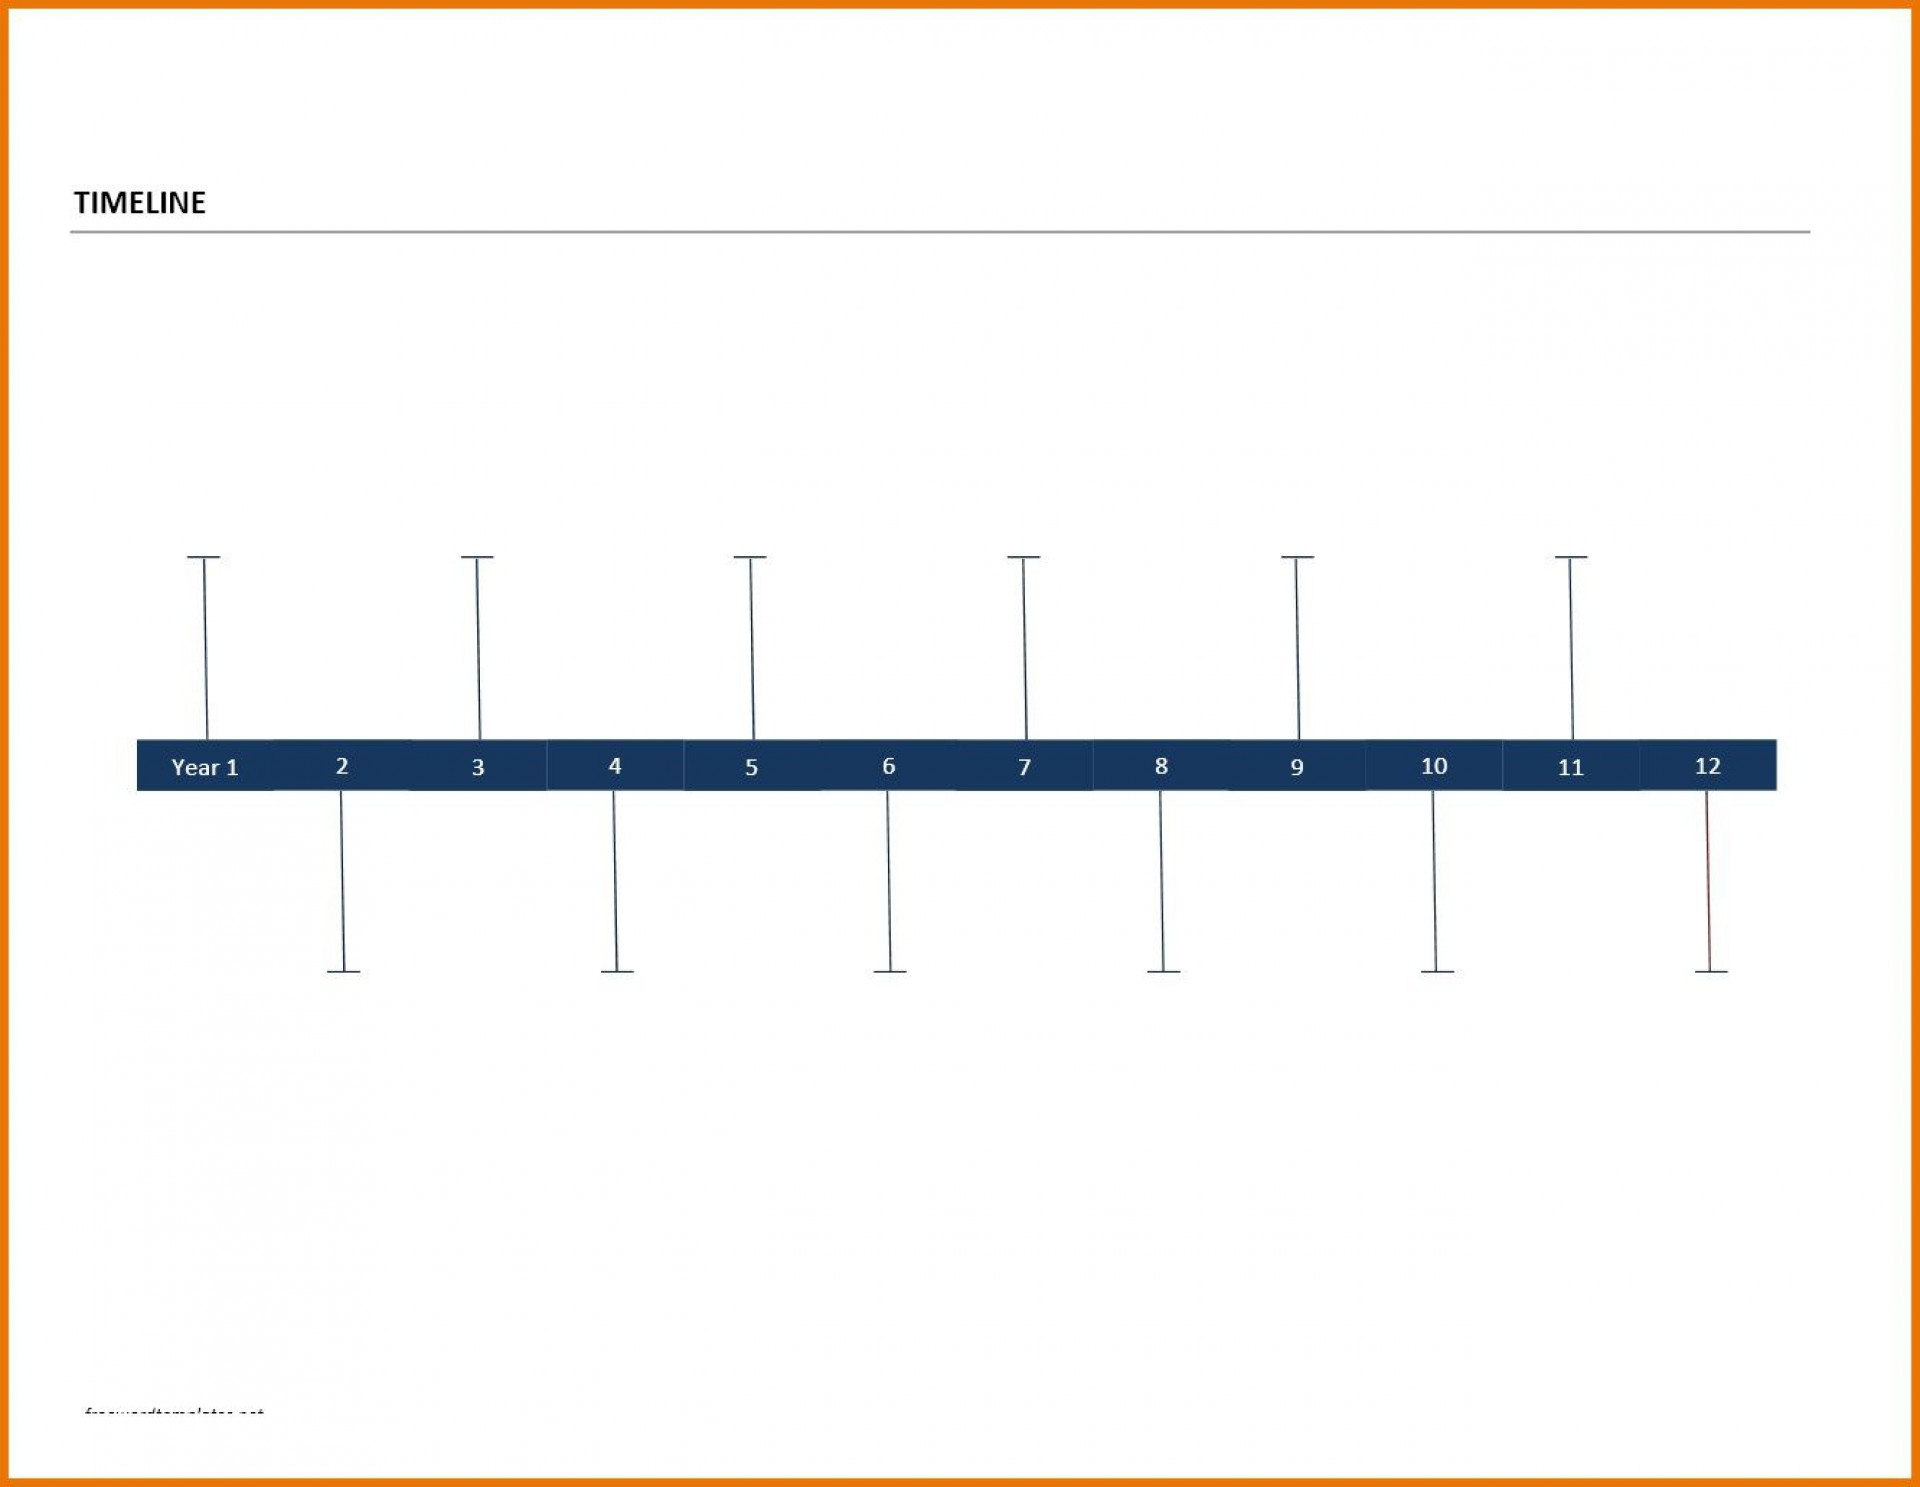 009 Remarkable Timeline Template For Word Inspiration  History Downloadable1920